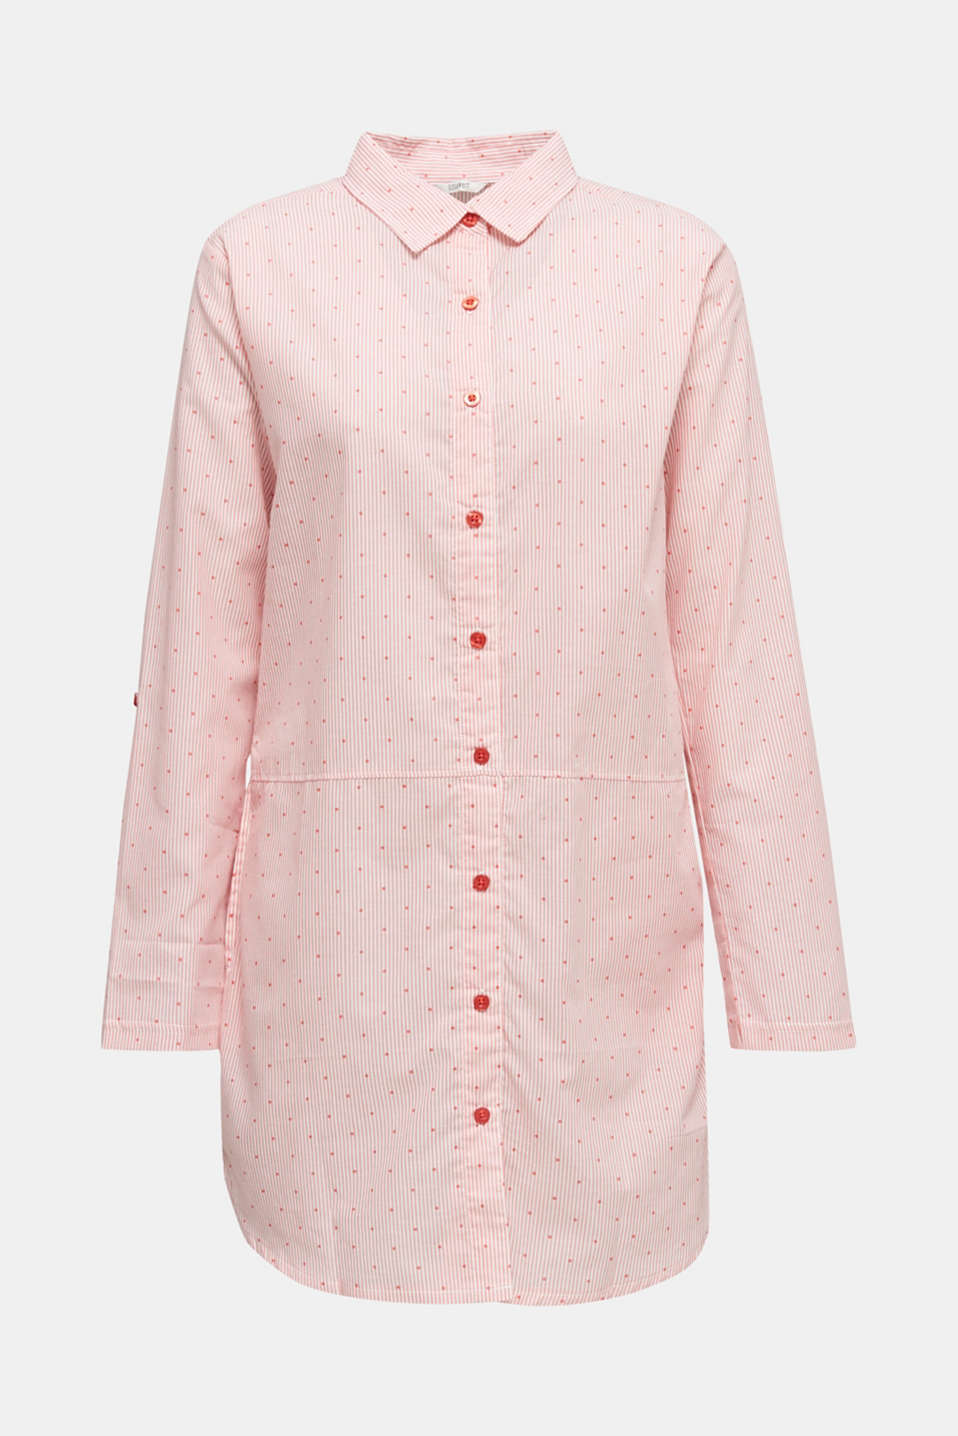 Woven nightshirt made of 100% cotton, CORAL RED, detail image number 6